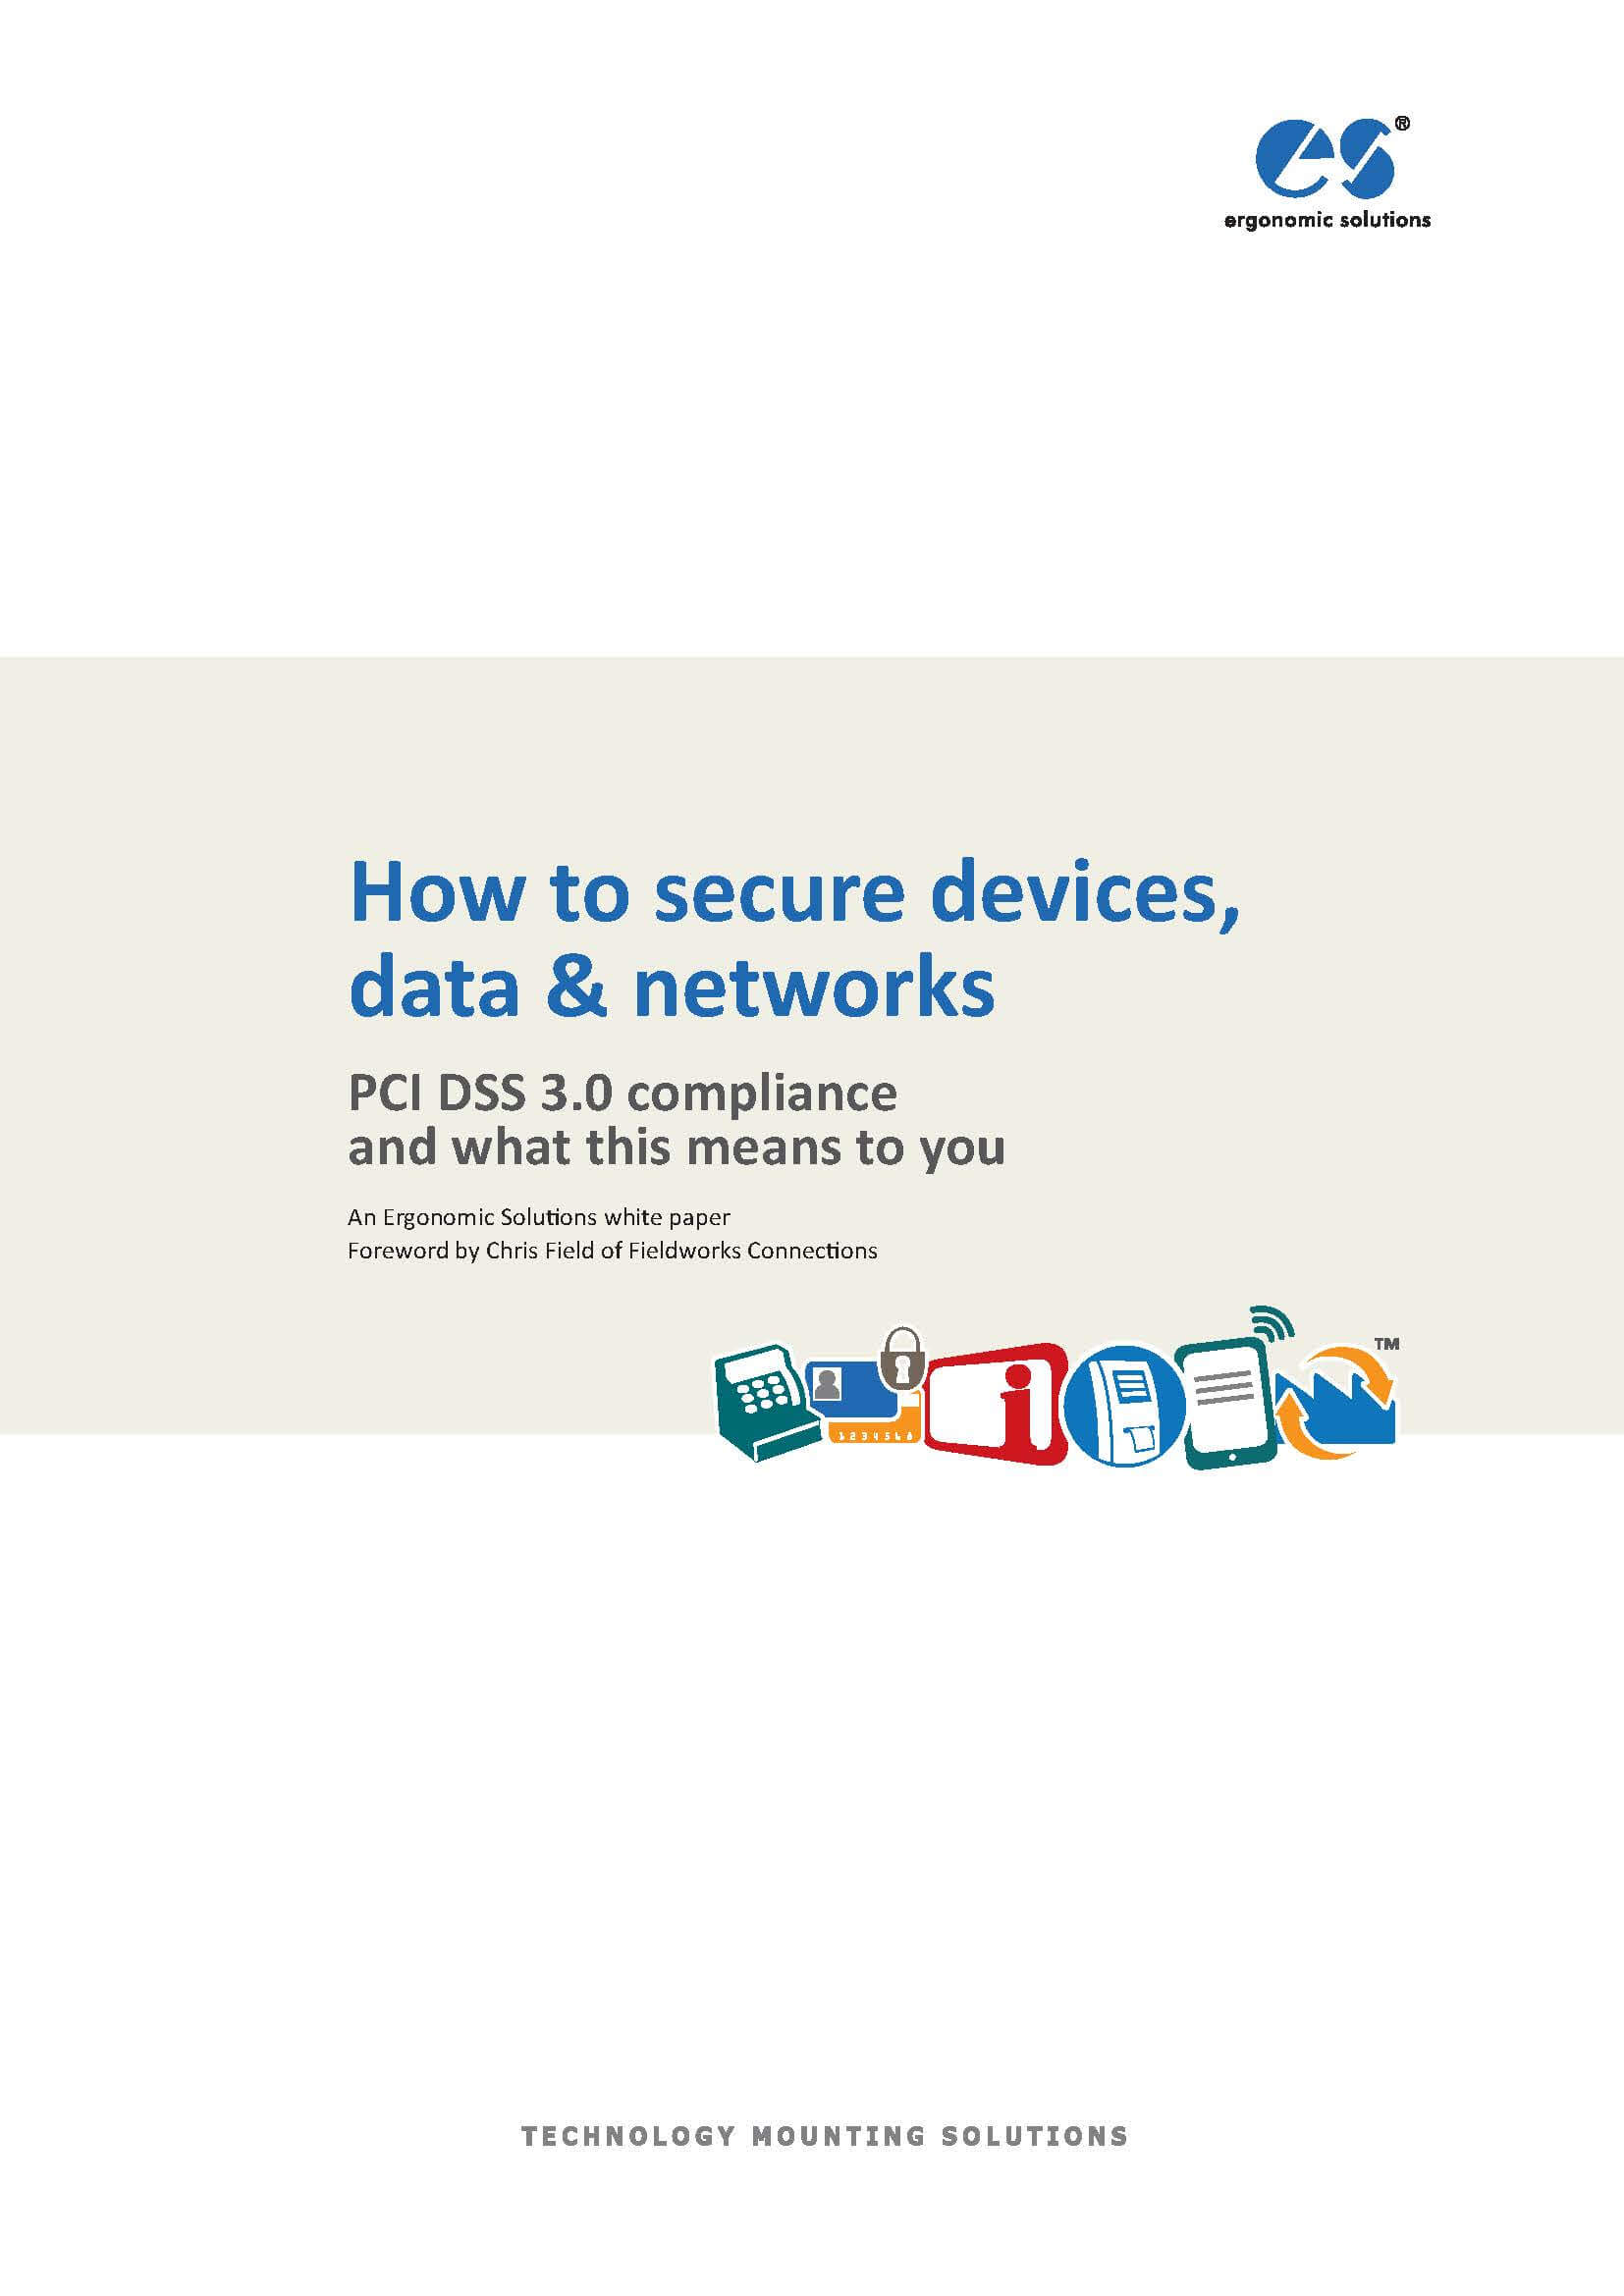 How to secure devices, data & networks